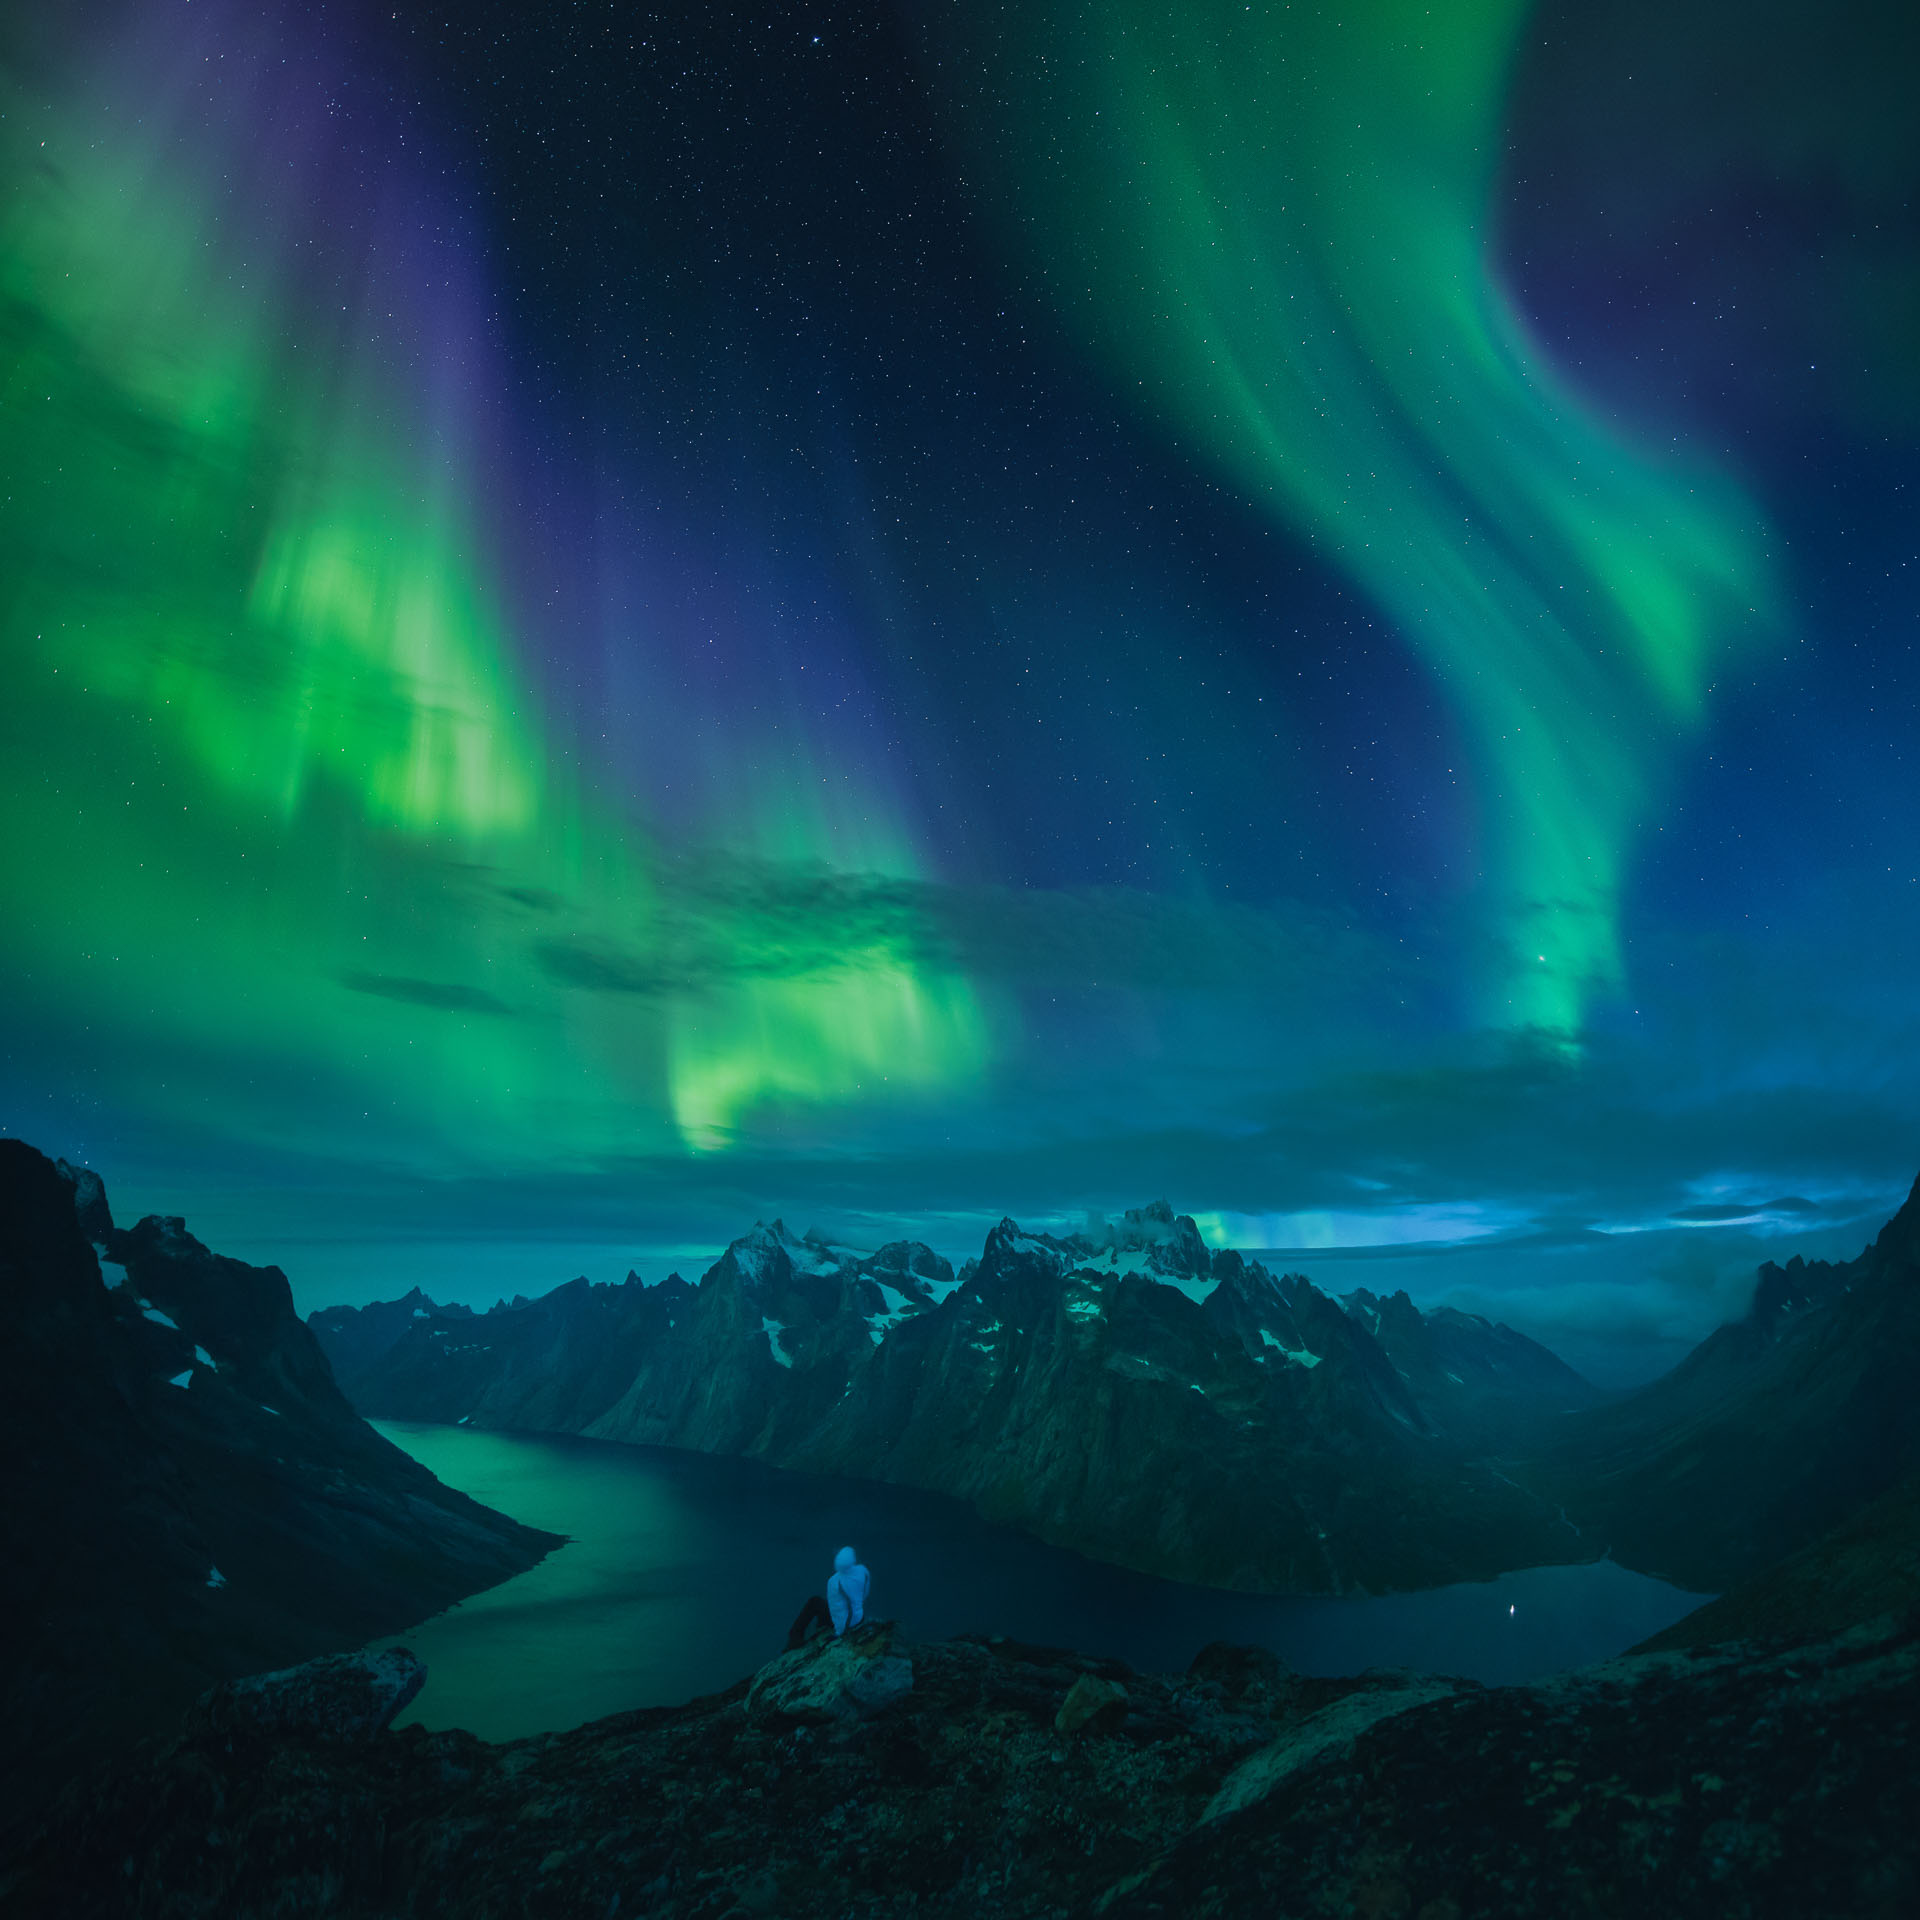 Northern Lights Aurora Borealis Greenland Daniel Kordan Photograph Northern Lights